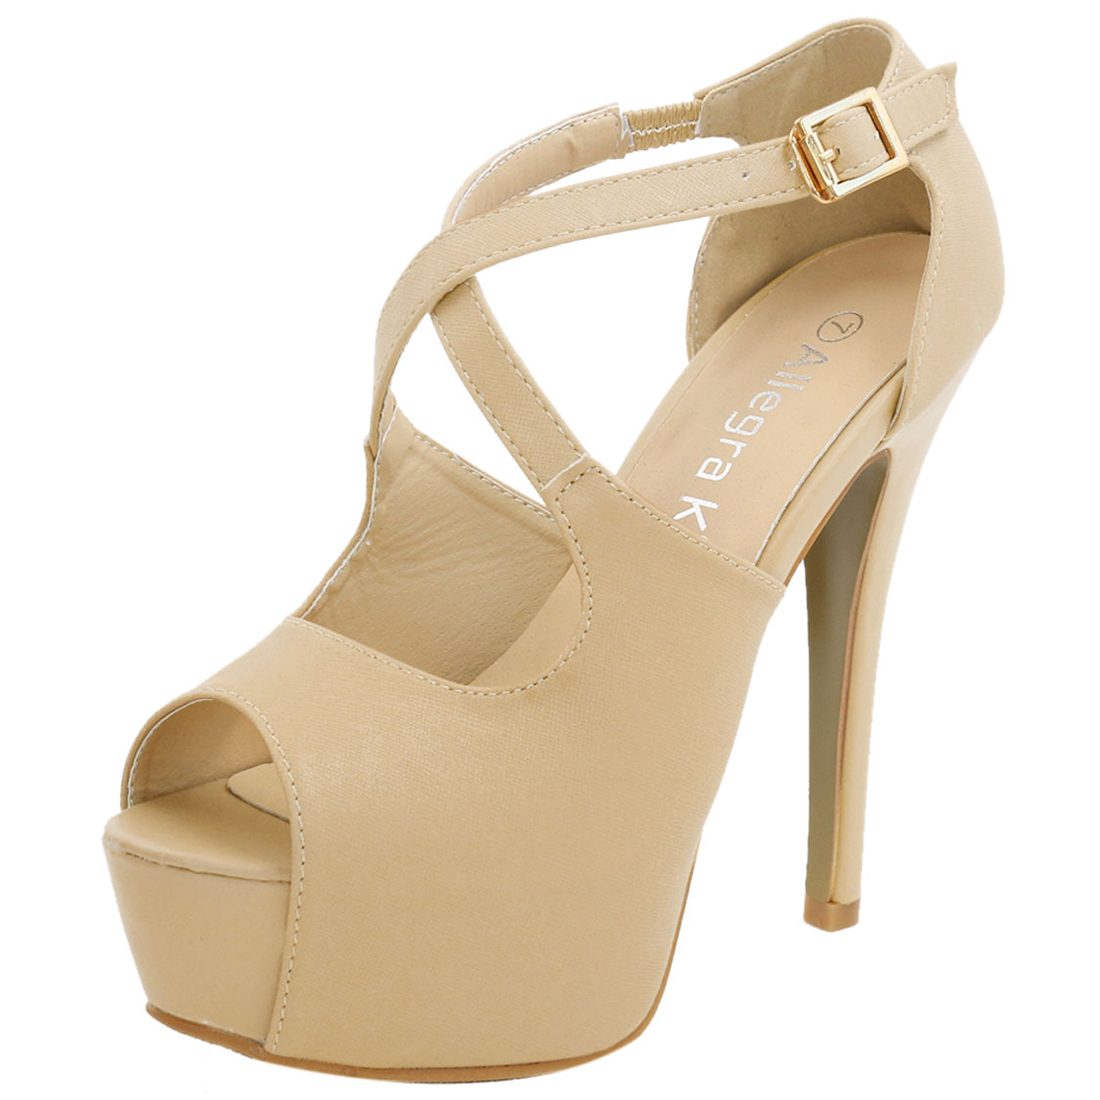 Woman Peep Toe High Heel Crisscross Straps Platform Sandals Beige US 7.5